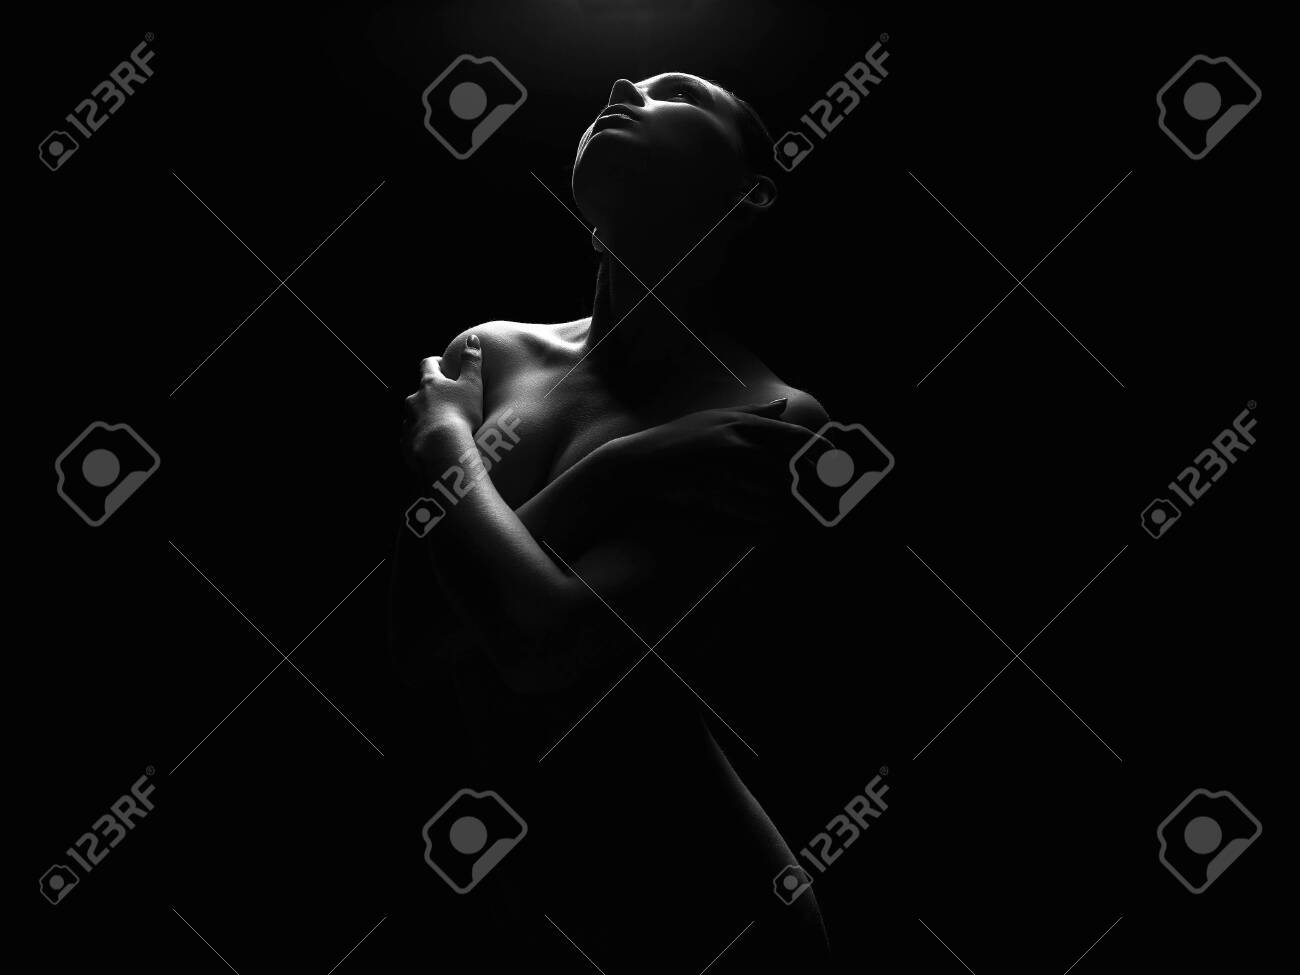 Black nude woman silhouette Nude Woman Silhouette Under Light In The Dark Beautiful Sexy Stock Photo Picture And Royalty Free Image Image 146540005